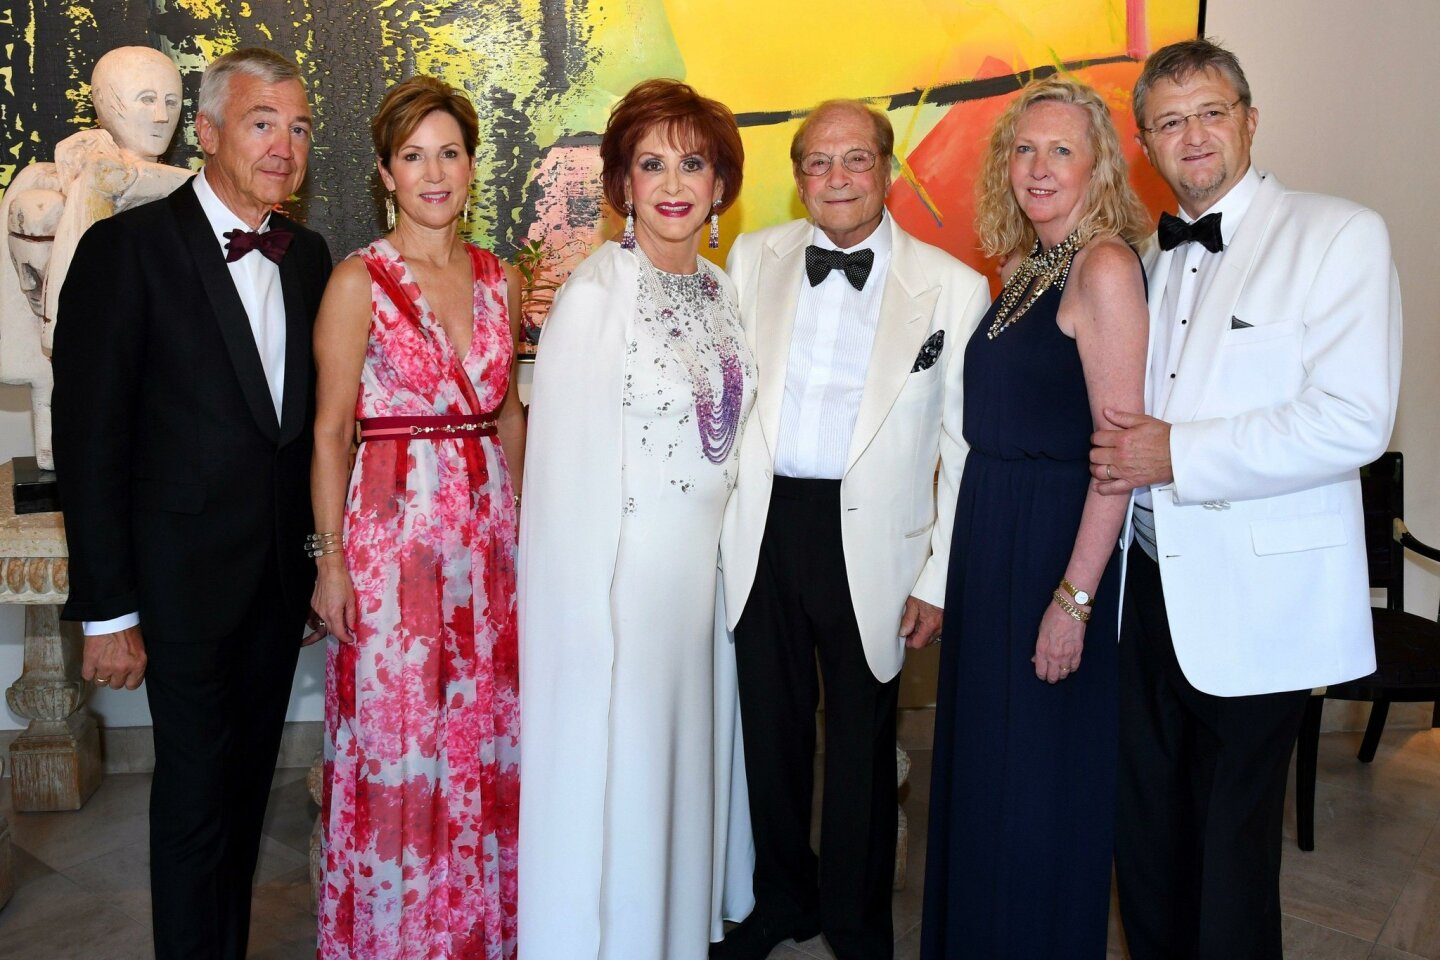 Peter Wagener and gala chair Sue Wagener with hosts Iris and Matthew Strauss, La Jolla Music Society president/artistic director Kristin and Thierry Lancino